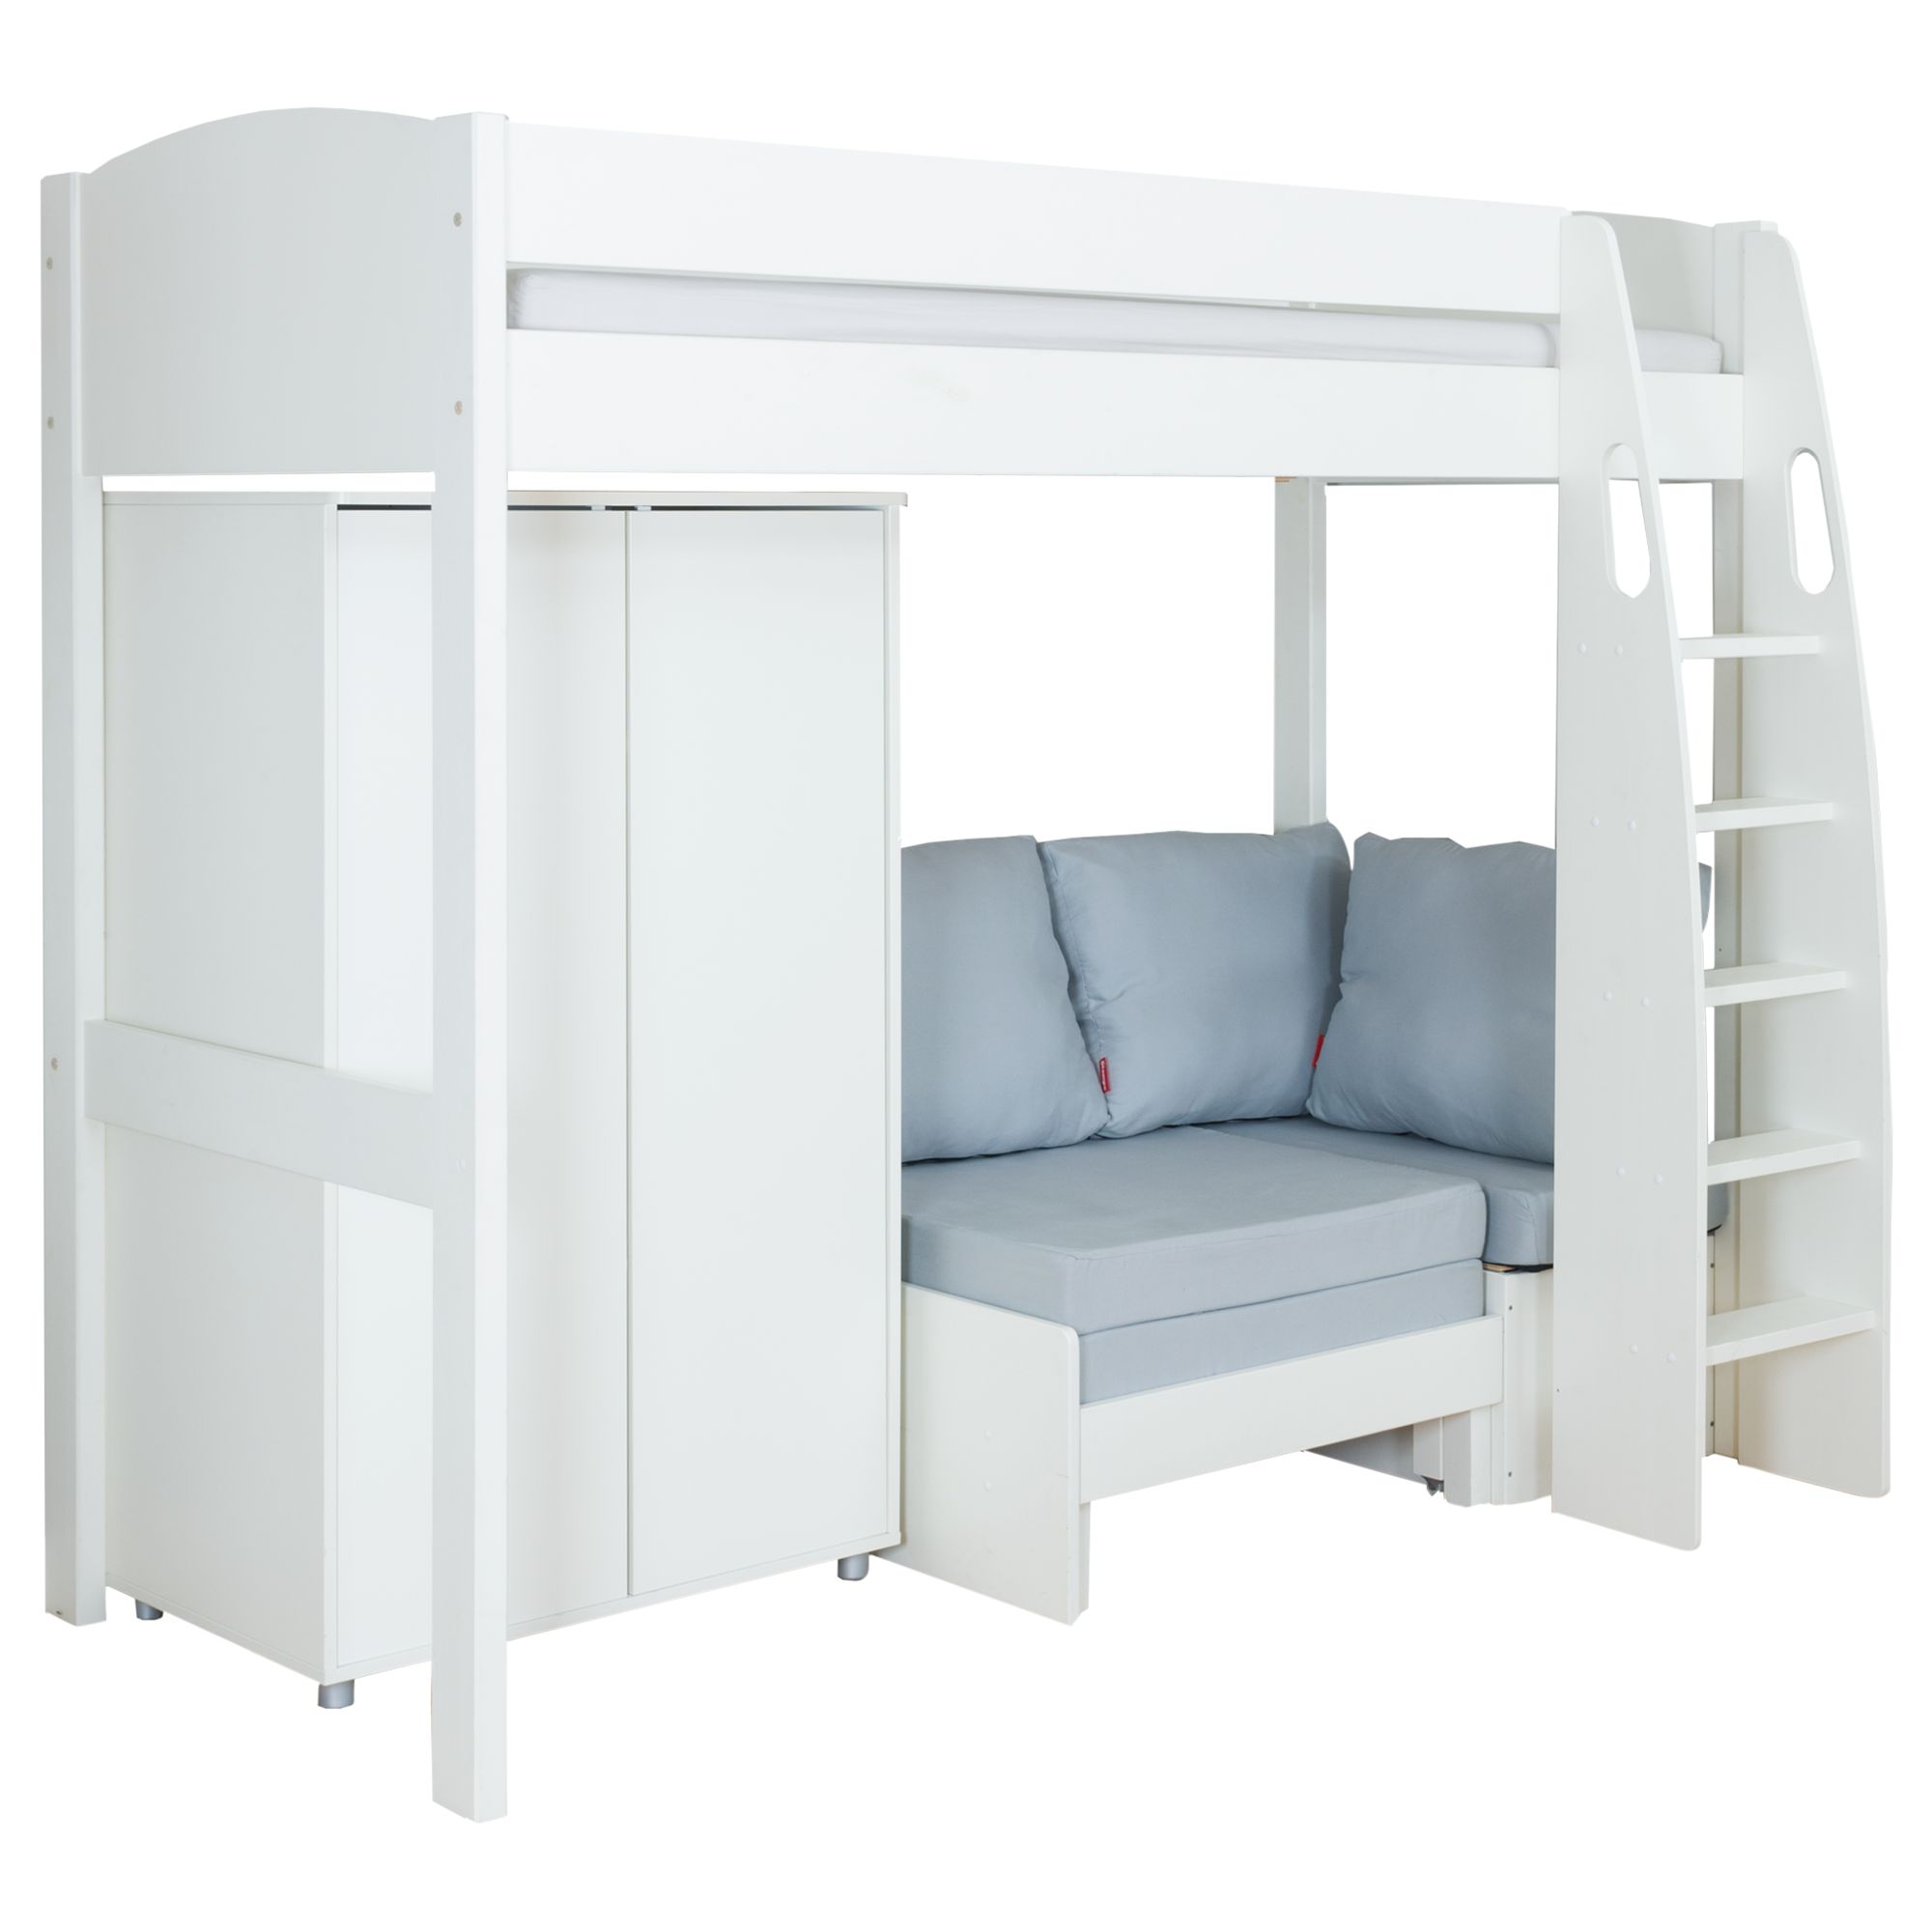 Stompa Stompa Uno S Plus High-Sleeper Bed with Wardrobe and Chair Bed